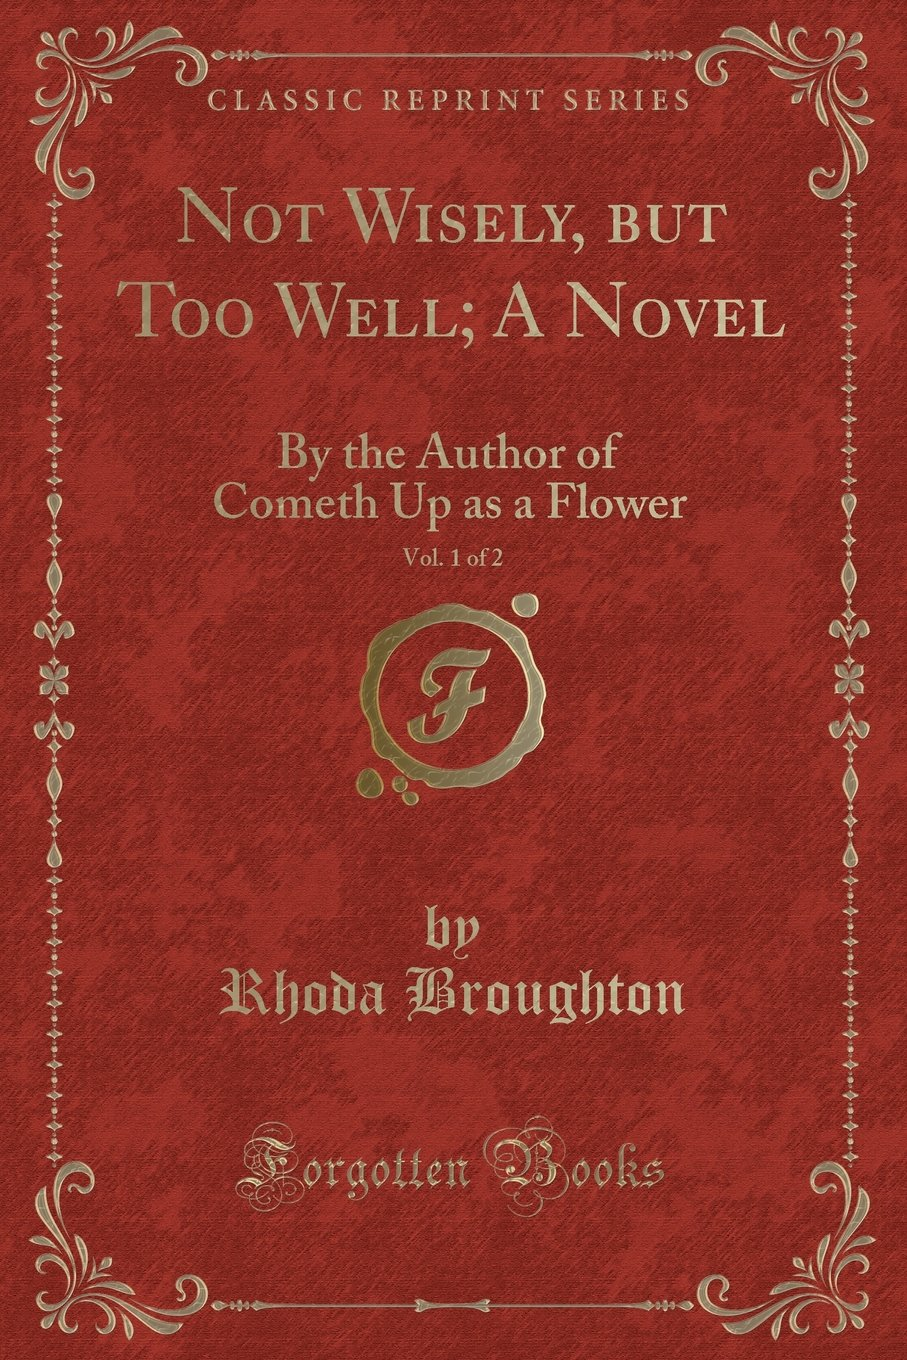 Download Not Wisely, but Too Well; A Novel, Vol. 1 of 2: By the Author of Cometh Up as a Flower (Classic Reprint) ebook